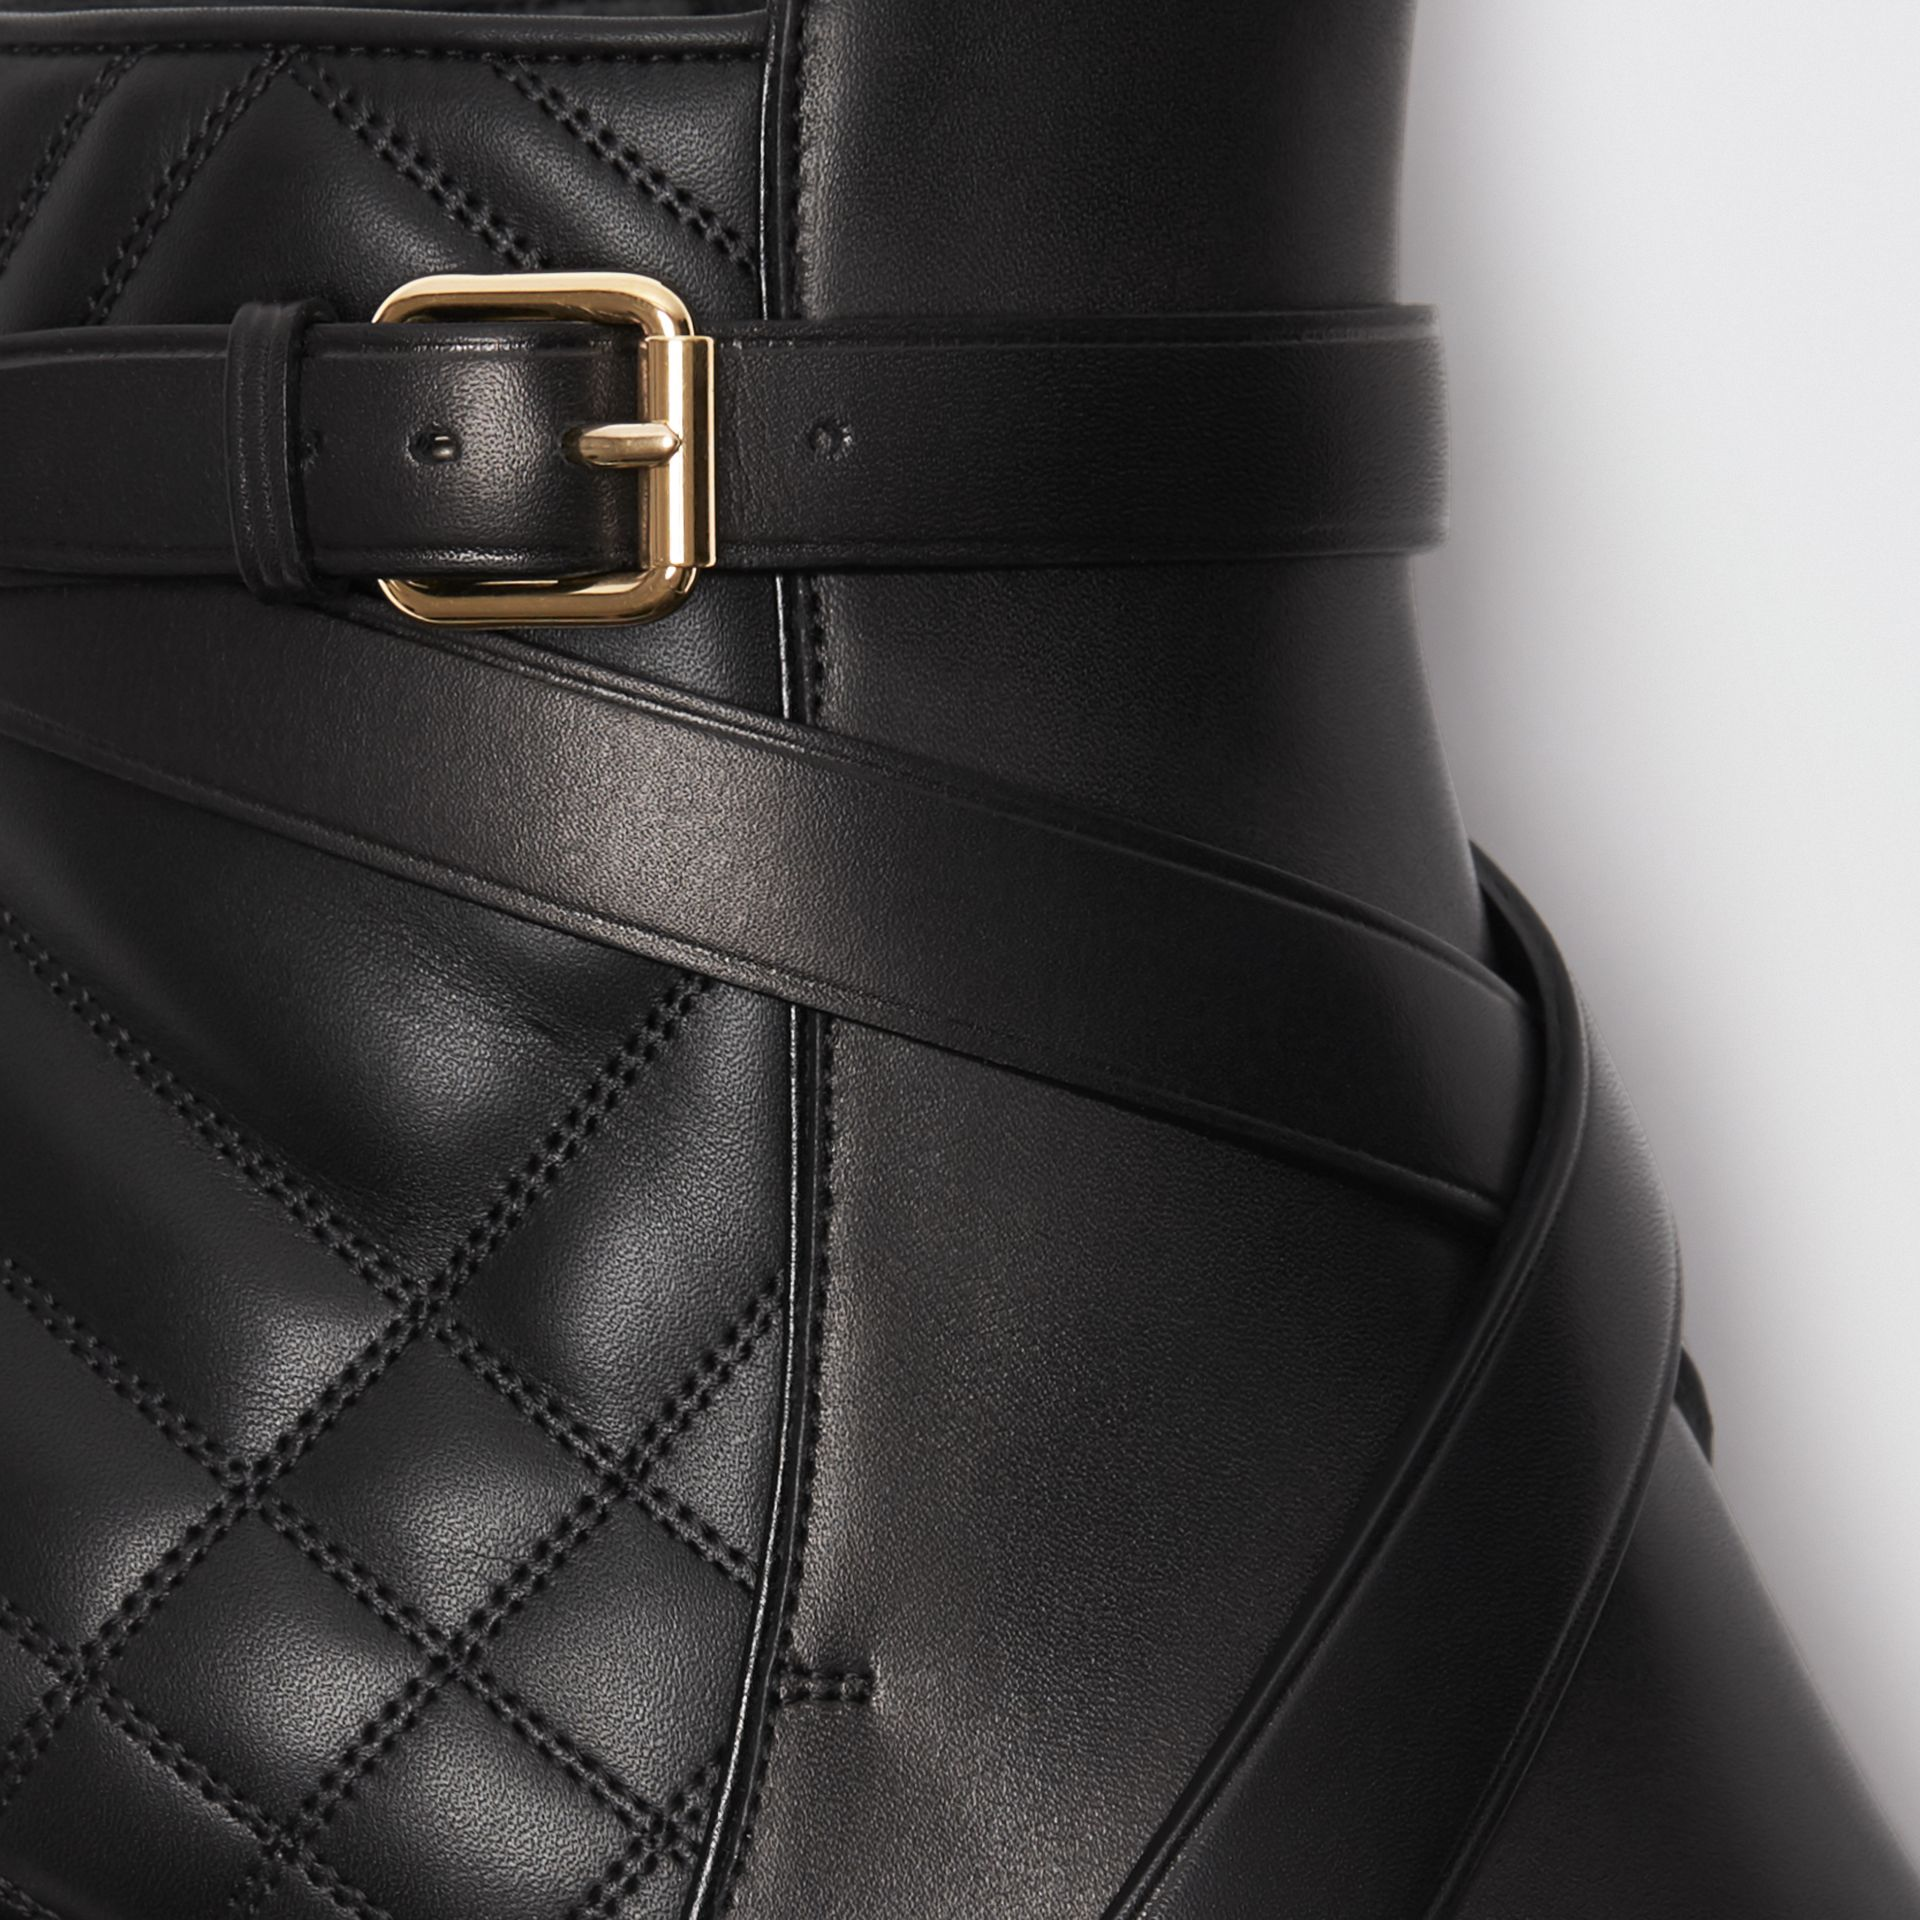 Bottines en cuir matelassé avec sangle (Noir) - Femme | Burberry Canada - photo de la galerie 1